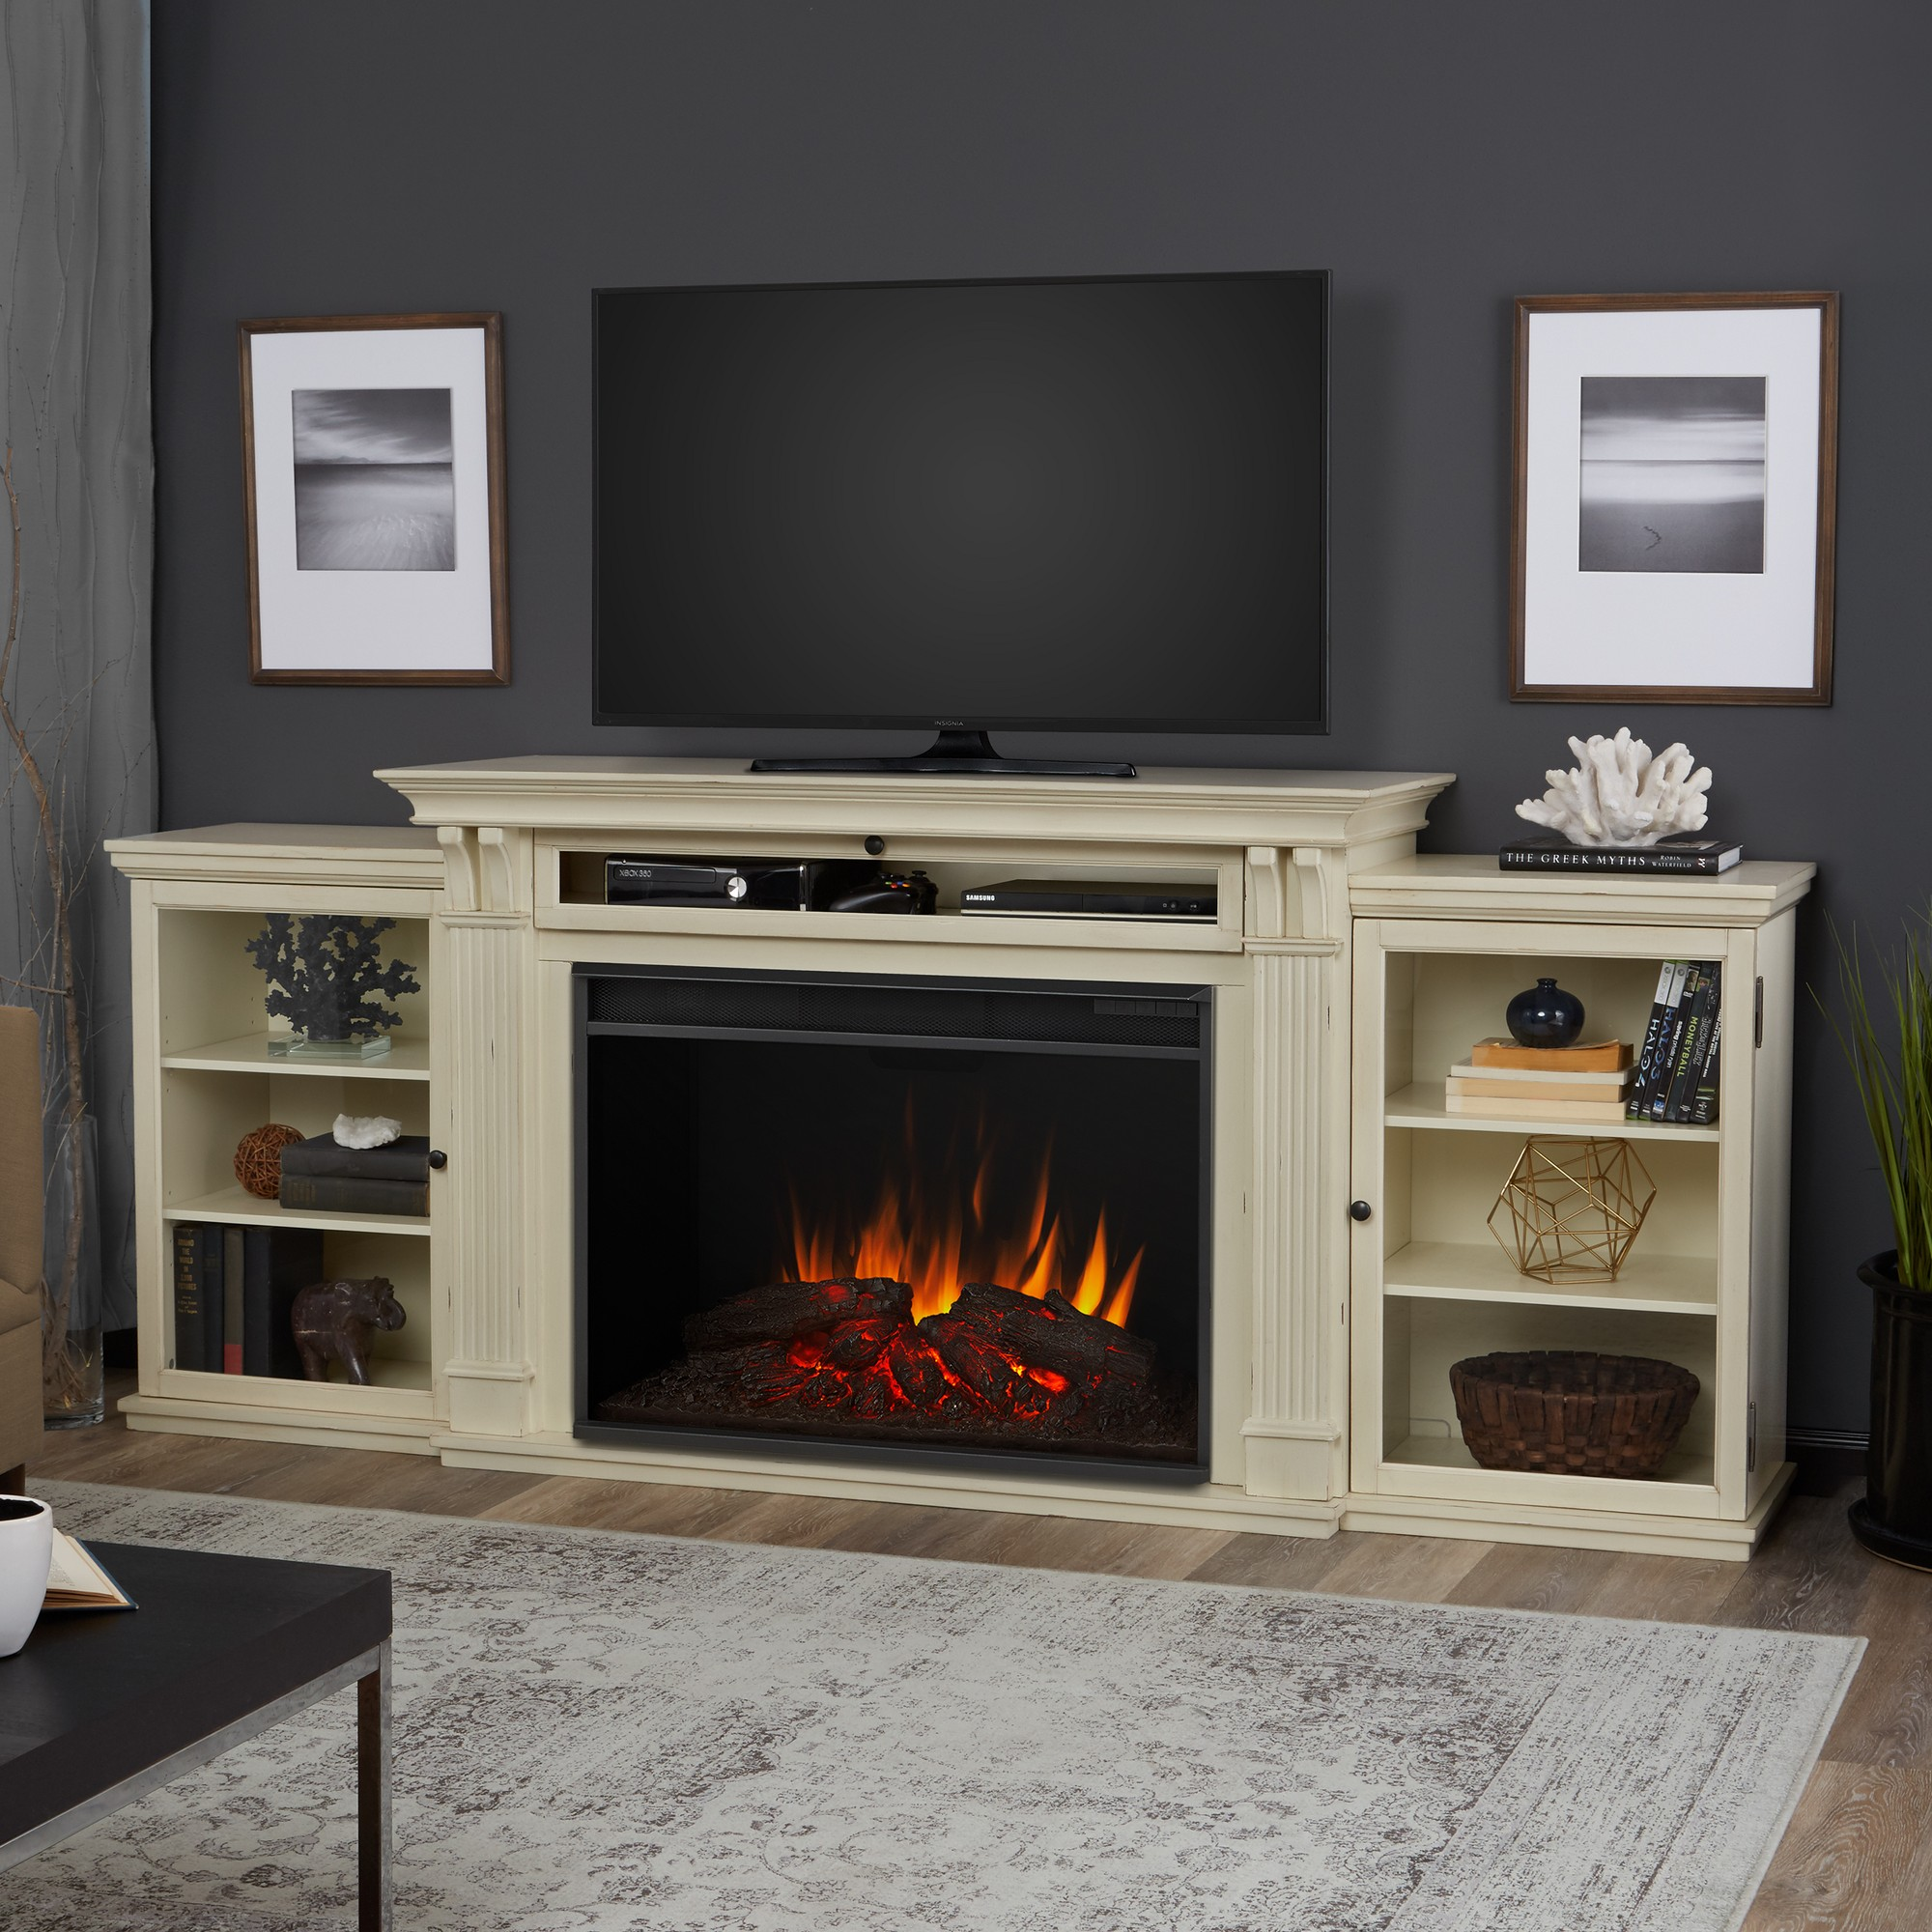 inch tv classic room piece fireplace rcwilley with entertainment furniture camden jsp white rc fireplaces center living stand view